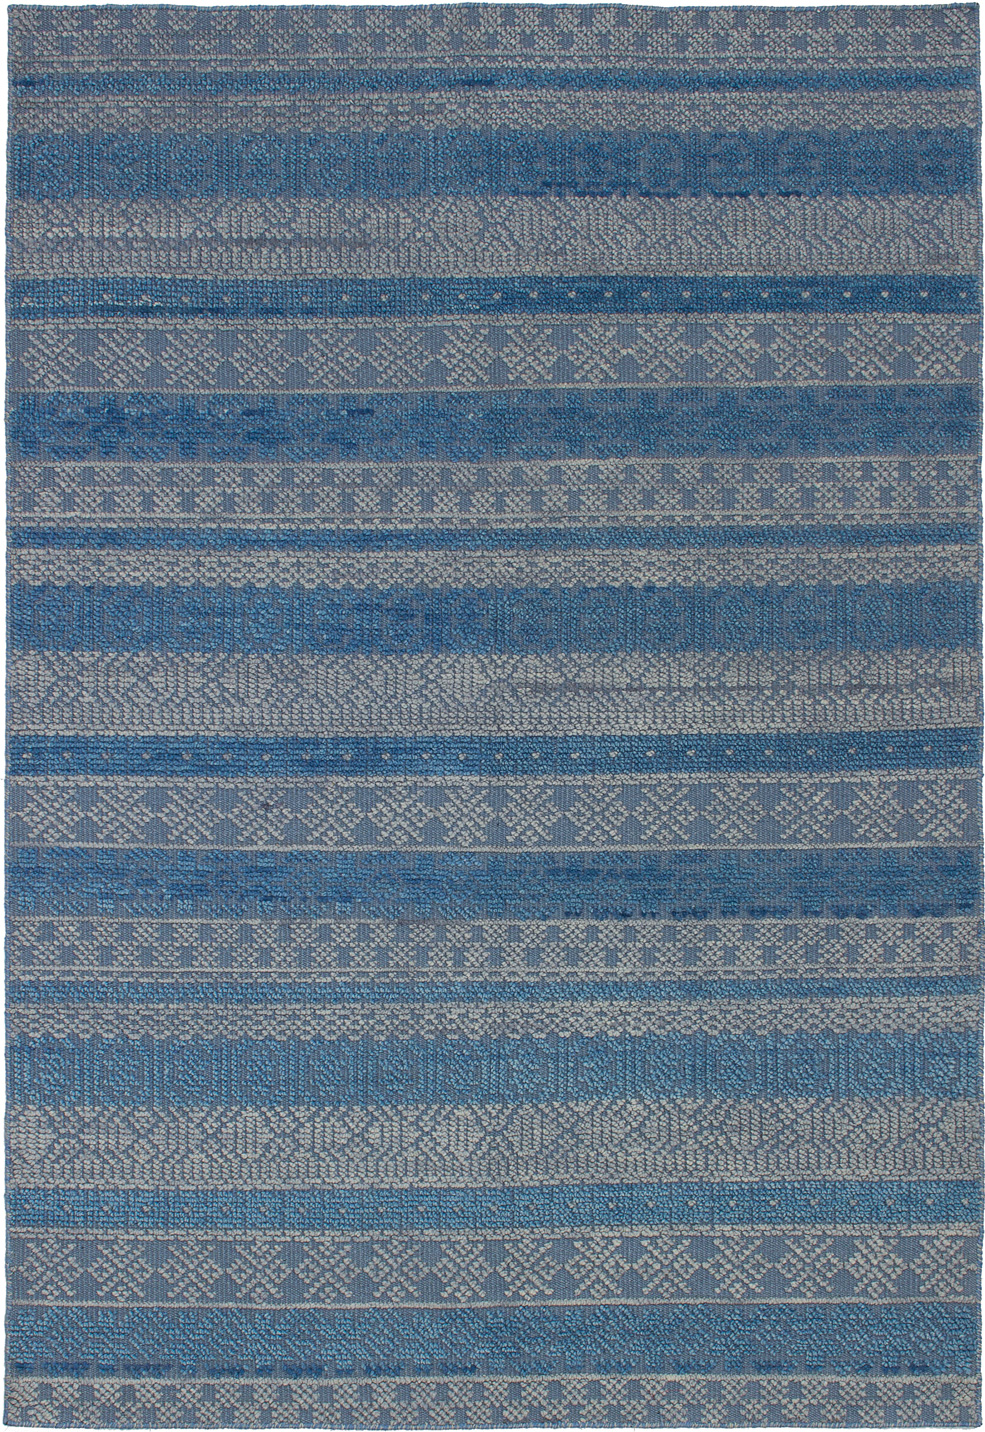 """Hand-knotted Eternity Blue Wool Rug 5'3"""" x 7'7"""" Size: 5'3"""" x 7'7"""""""